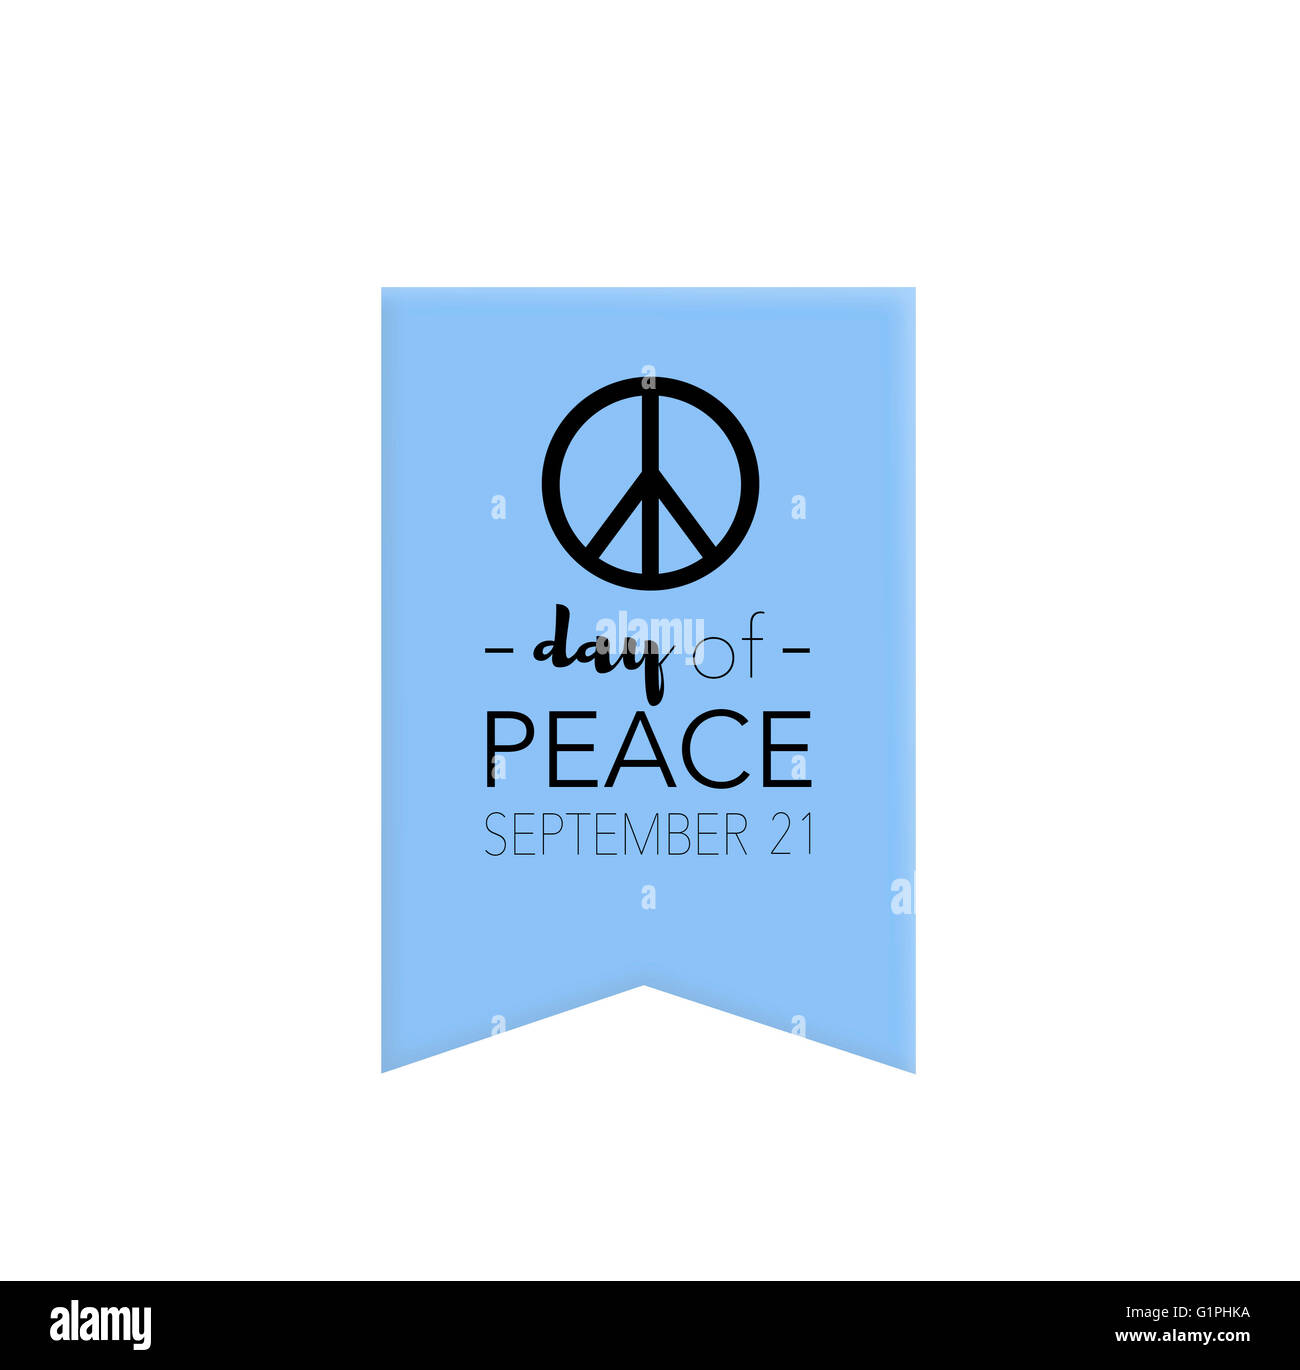 Day of peace, september 21st - Stock Image